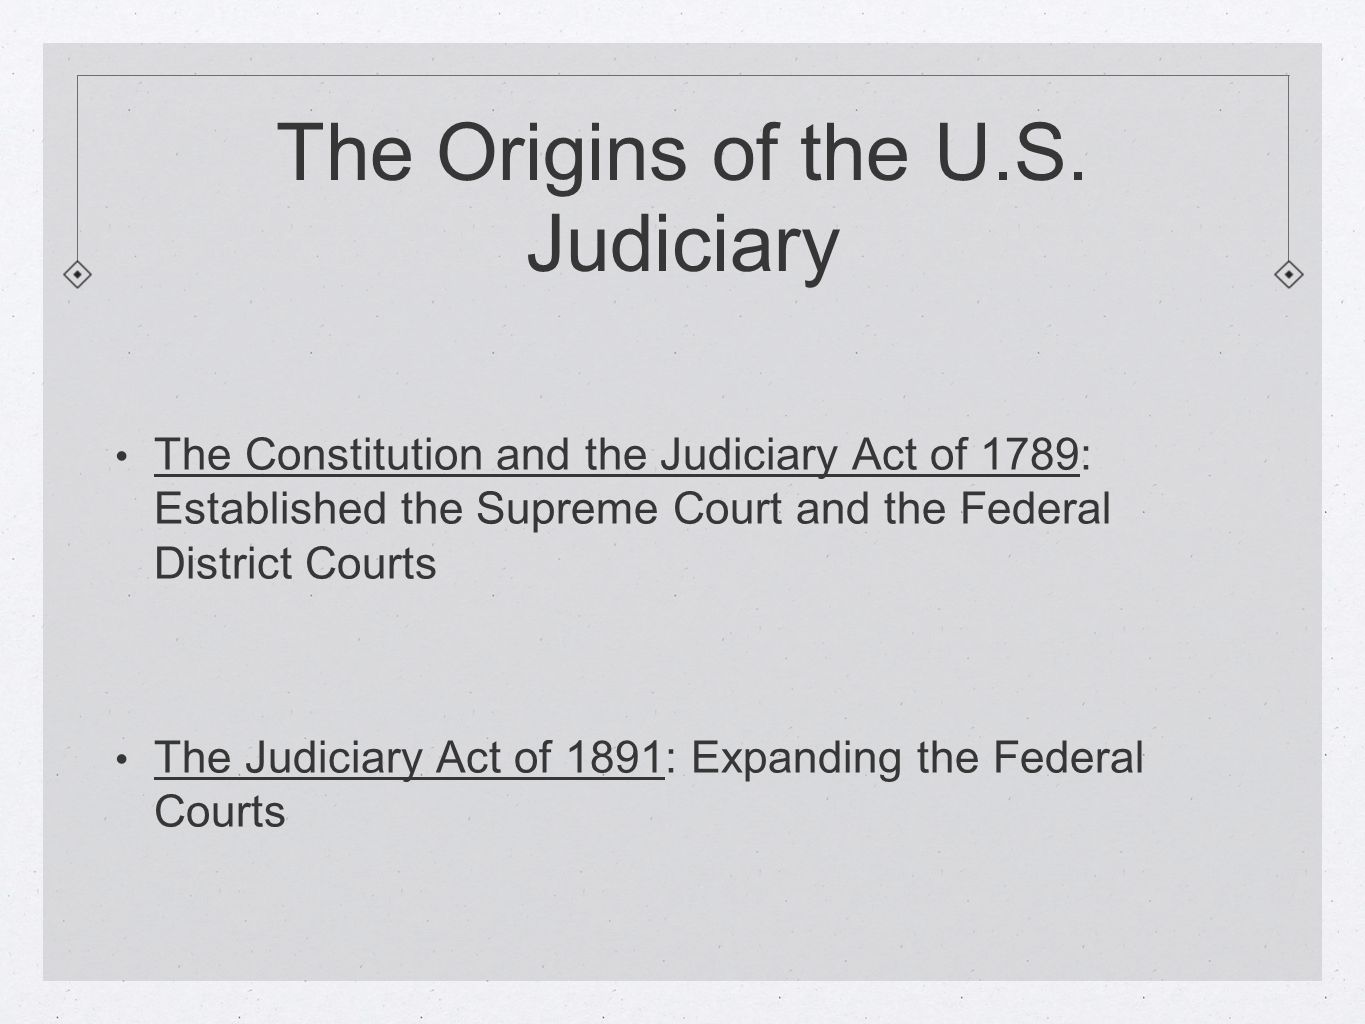 The Origins of the U.S. Judiciary